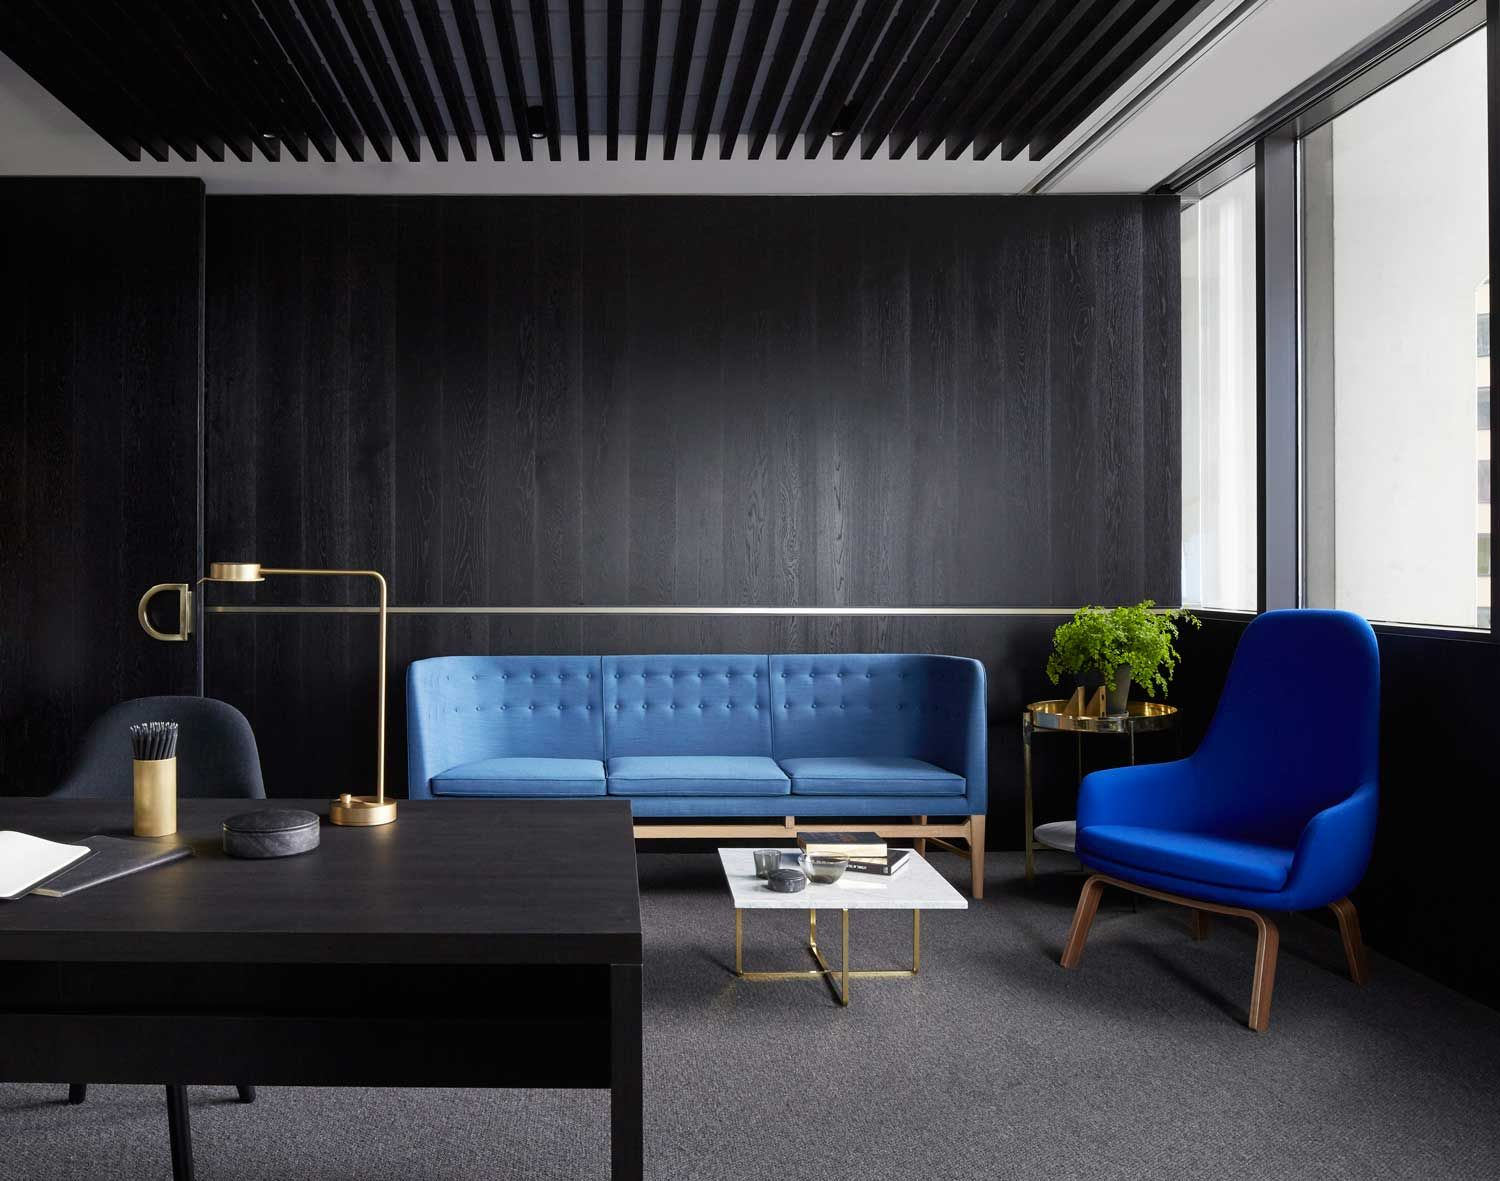 Mim designs creates dream office for landream corporate for Luxury office interior